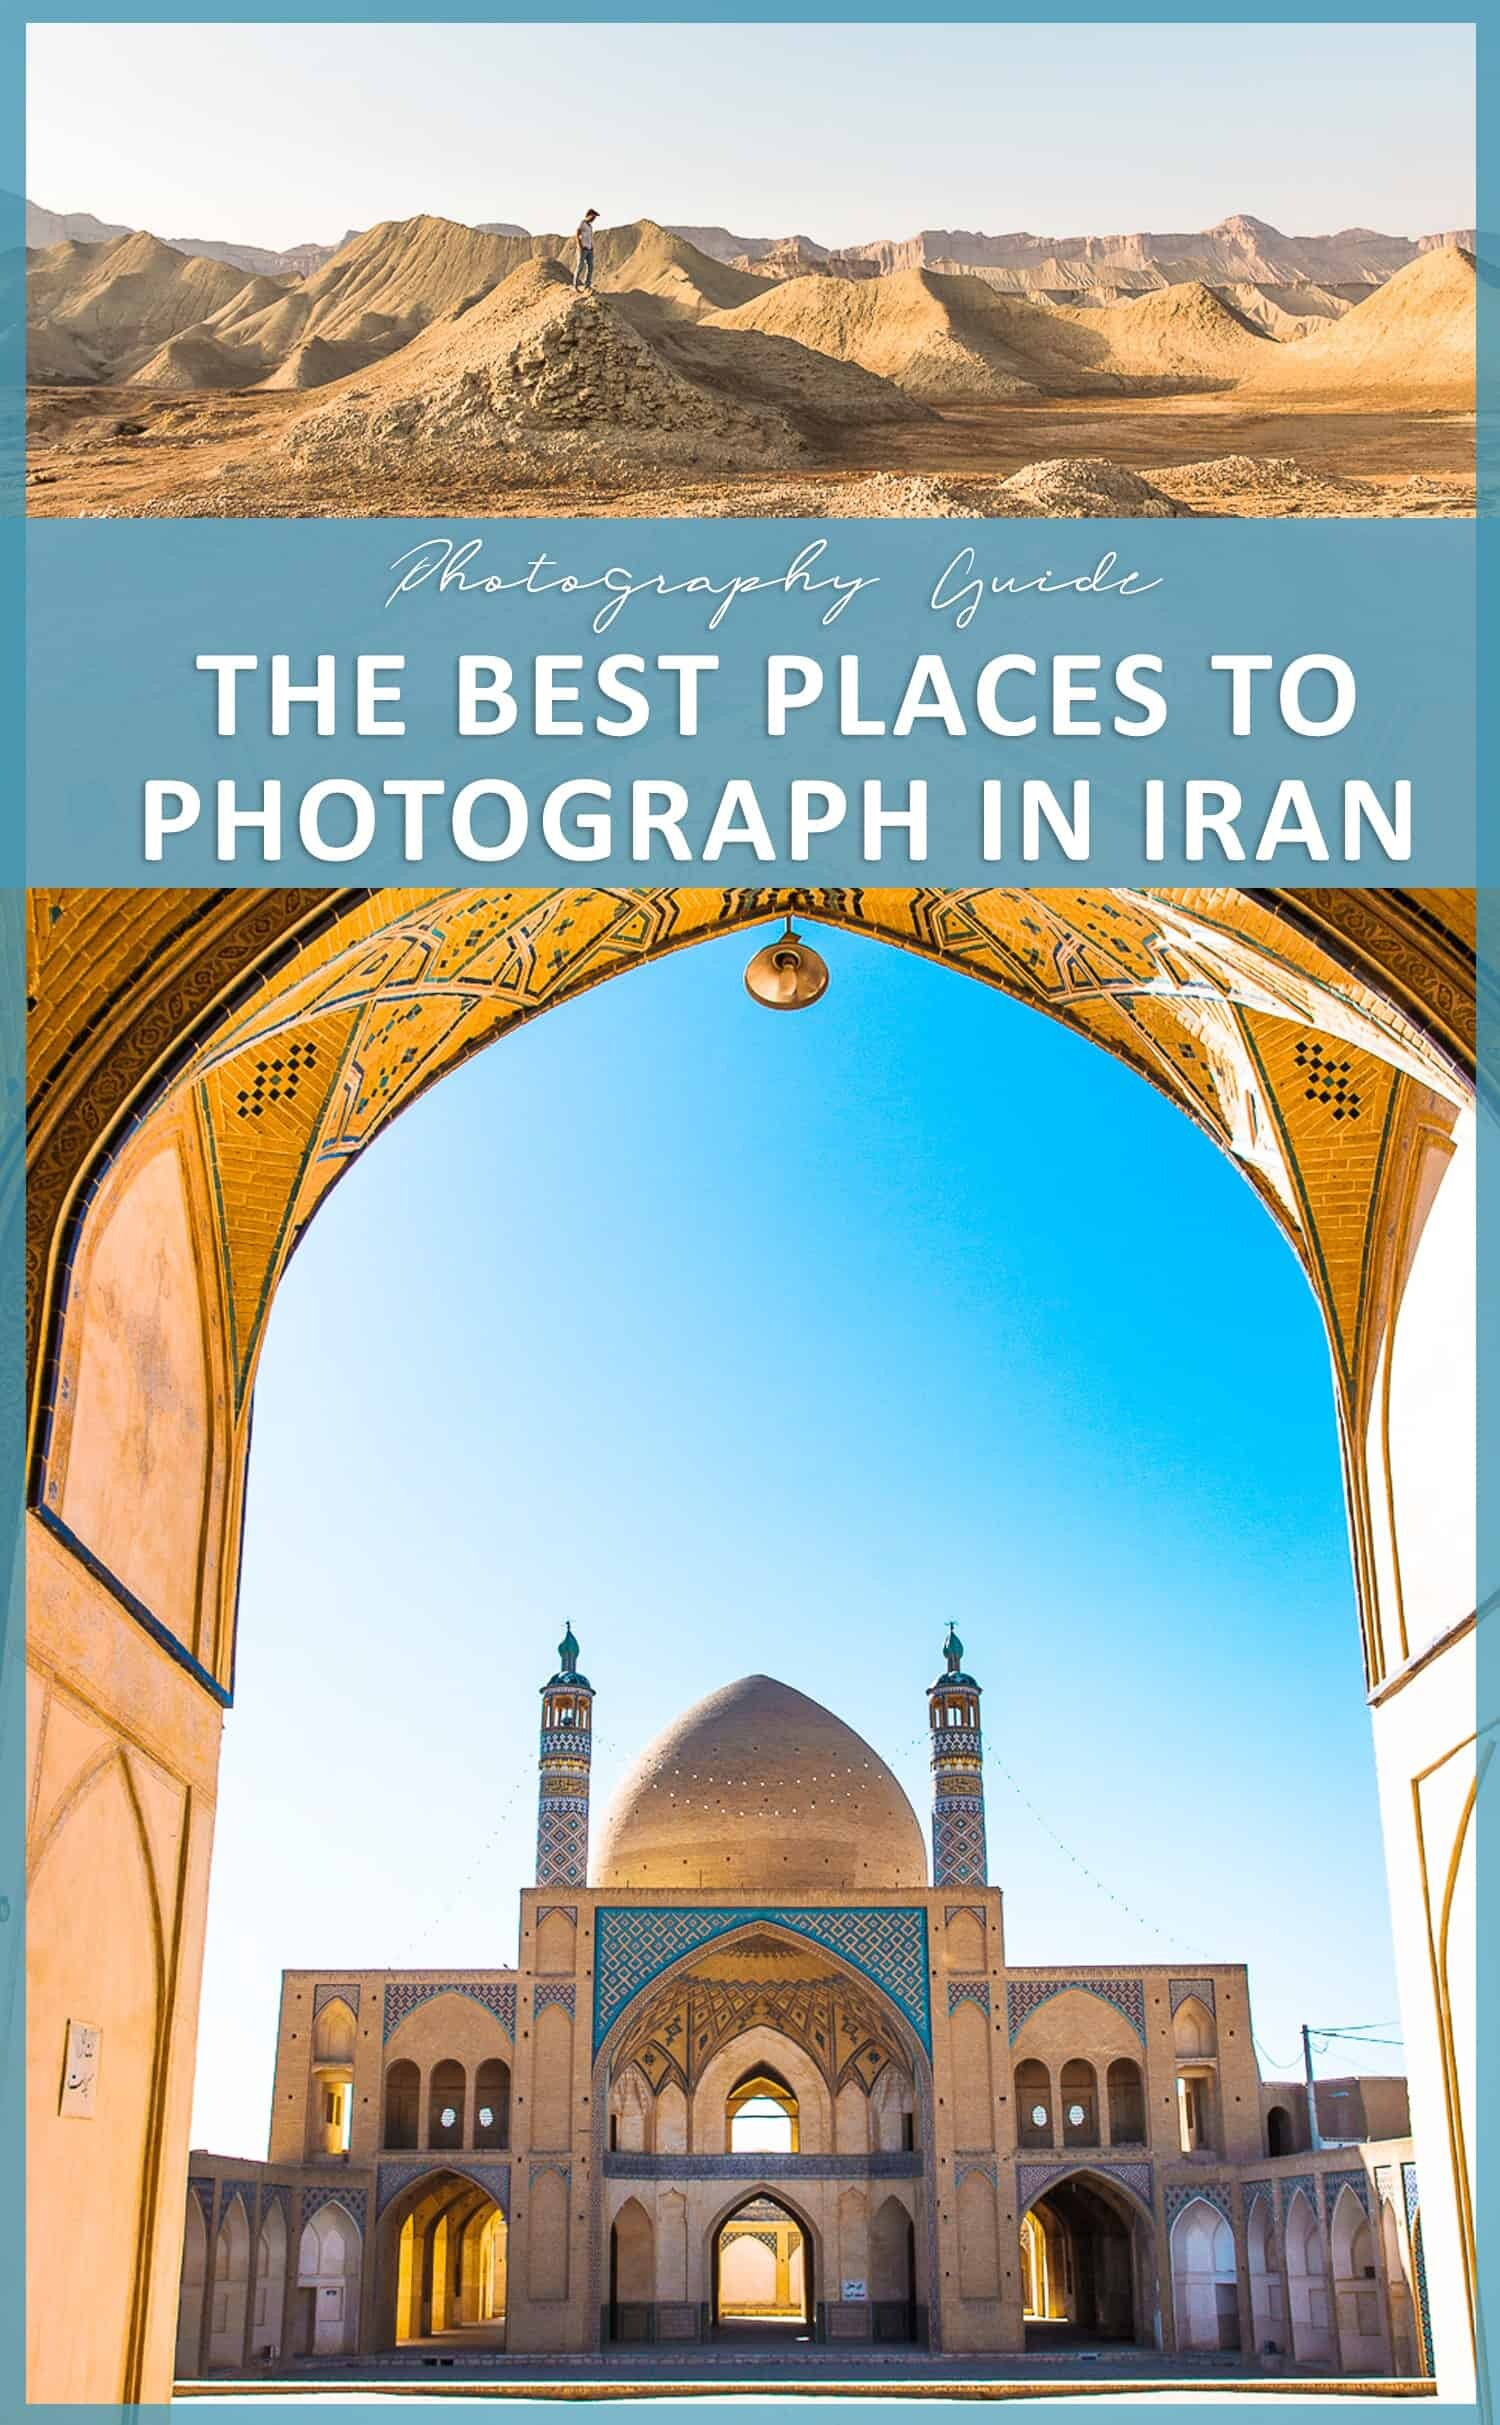 Places to visit in Iran and photography locations